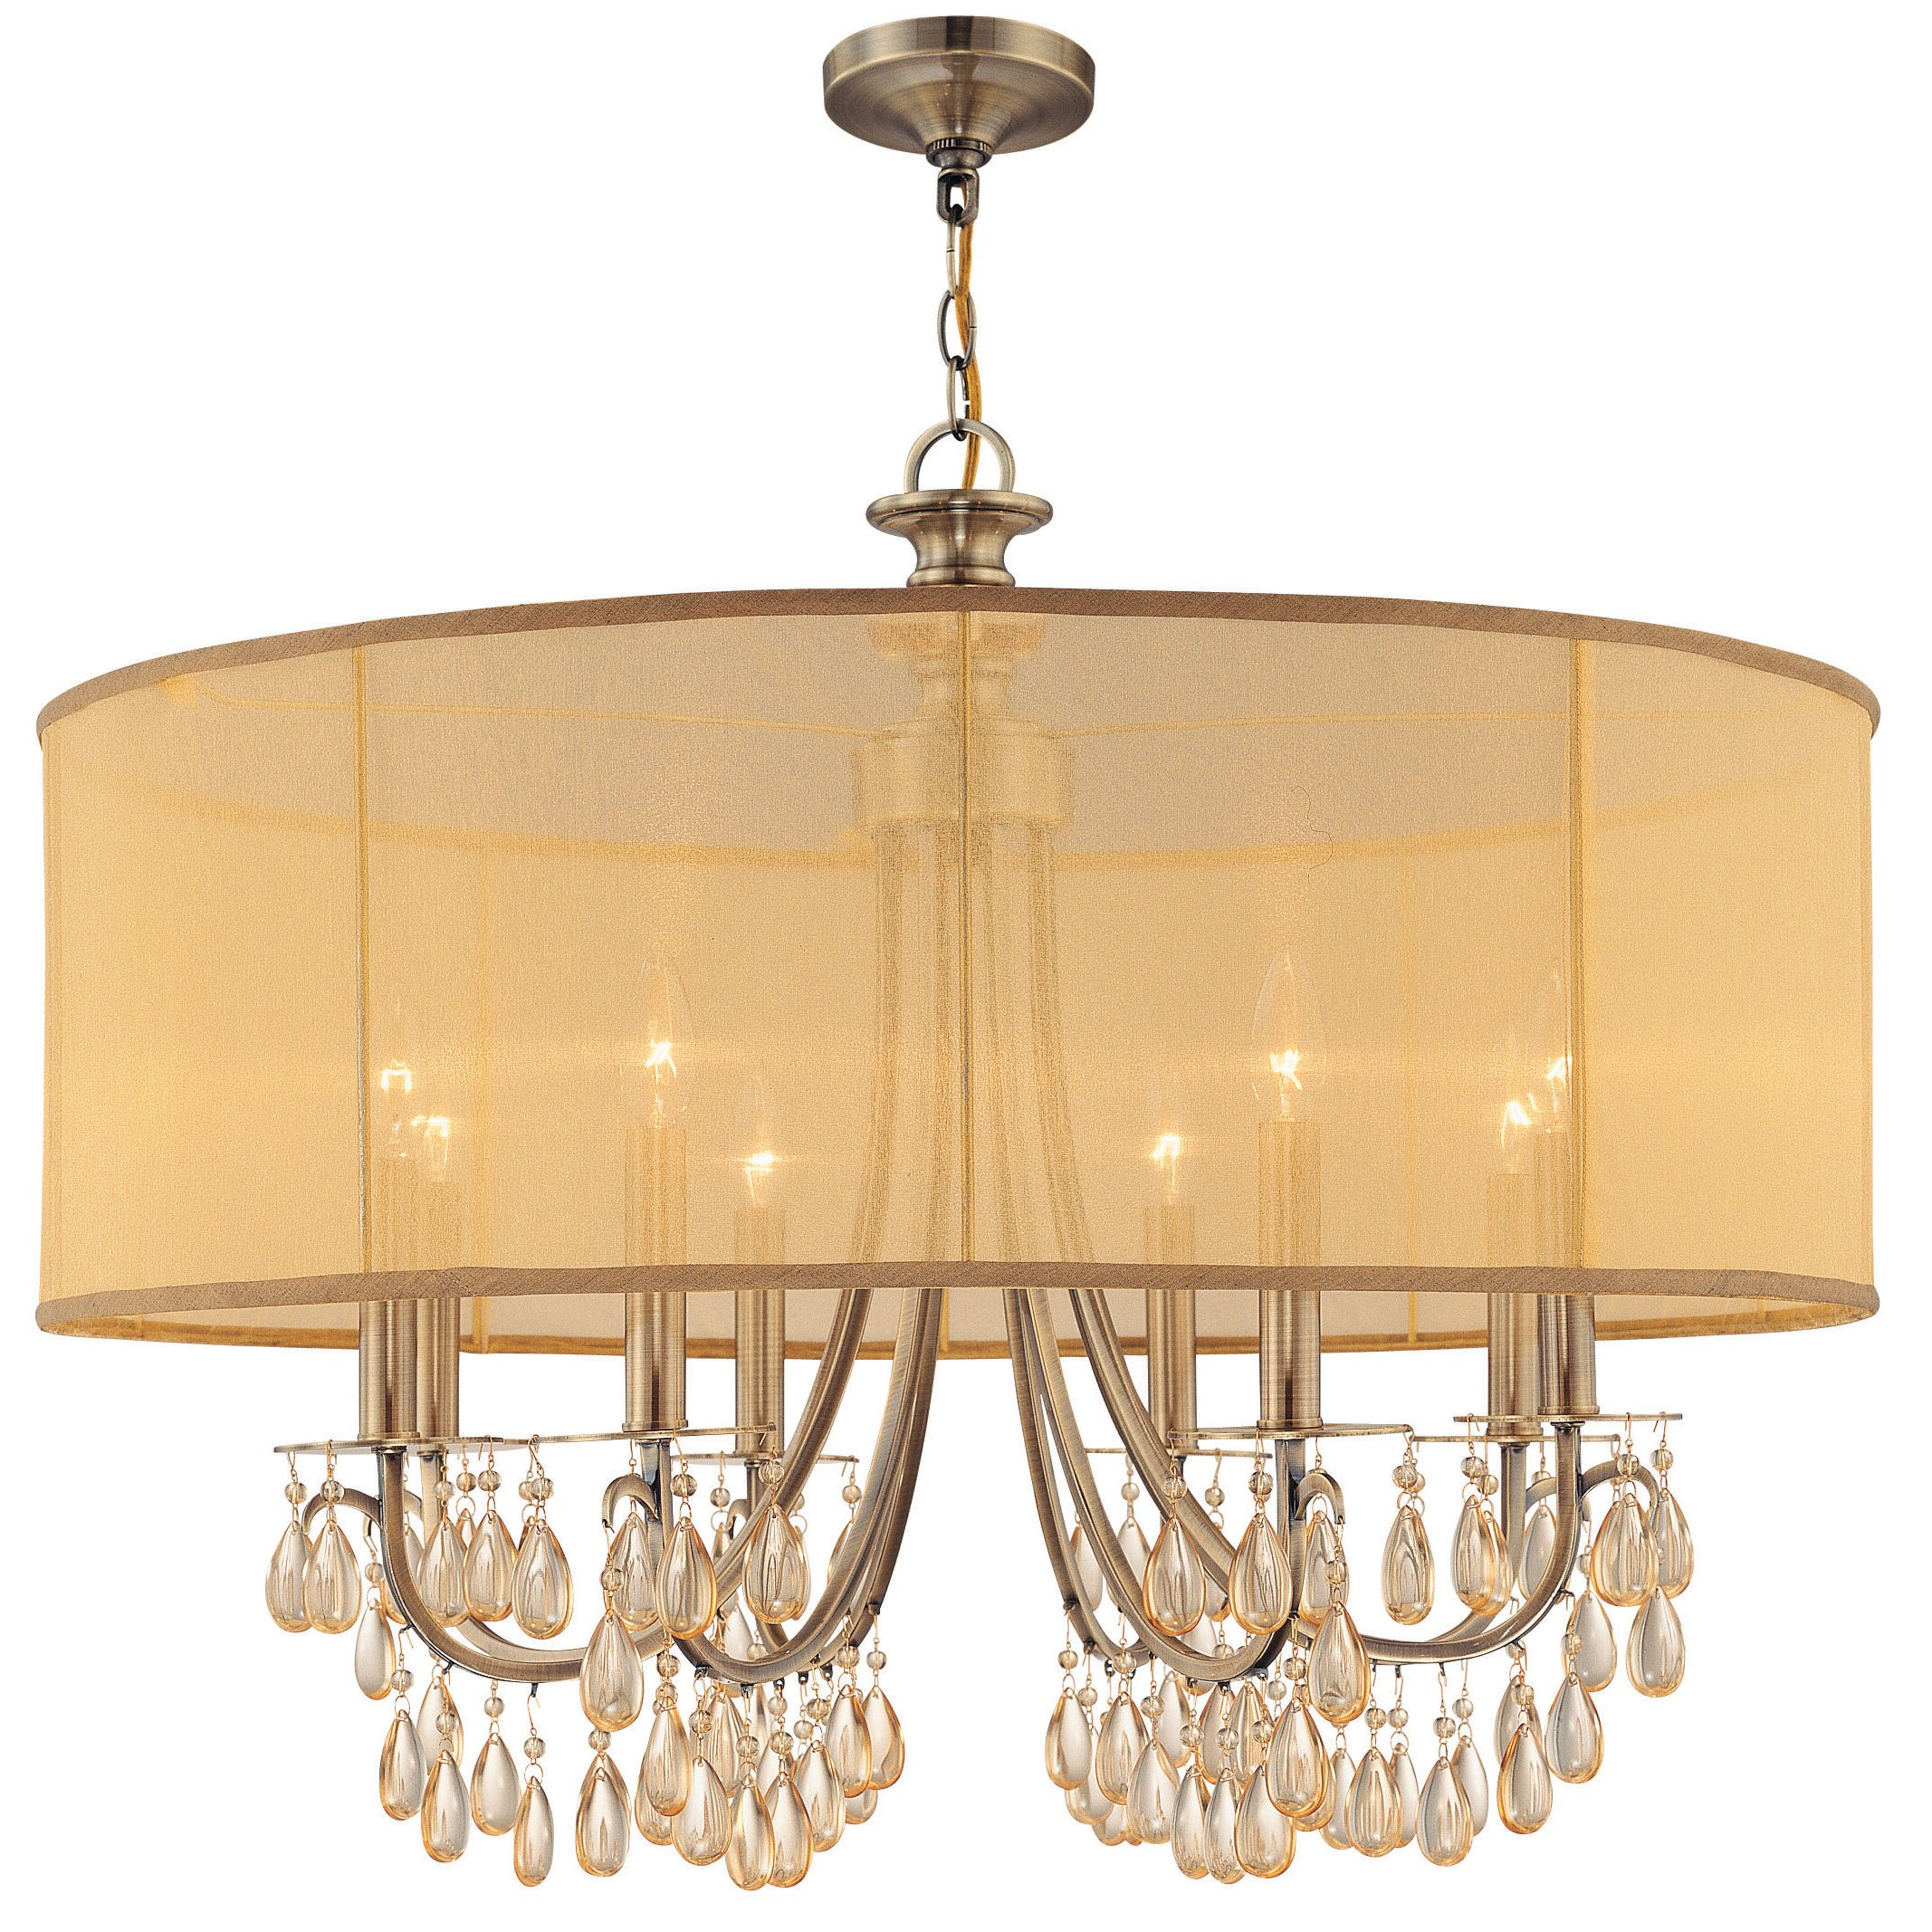 Wayfair Lights: Crystorama Hampton 8 Light Chandelier & Reviews